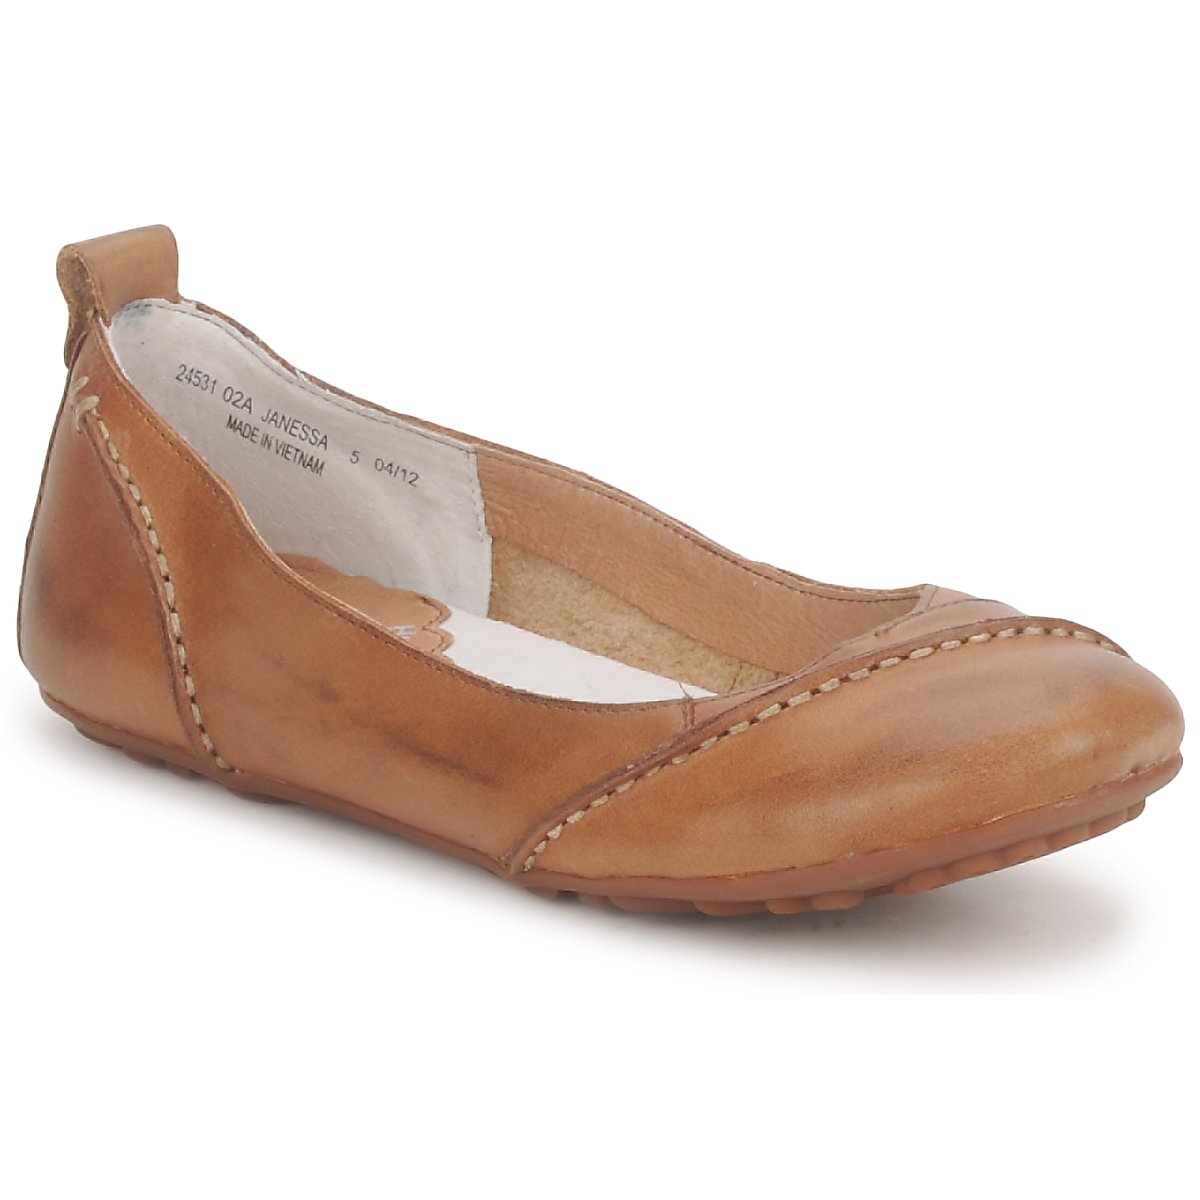 Ballerines Hush puppies JANESSA Marron